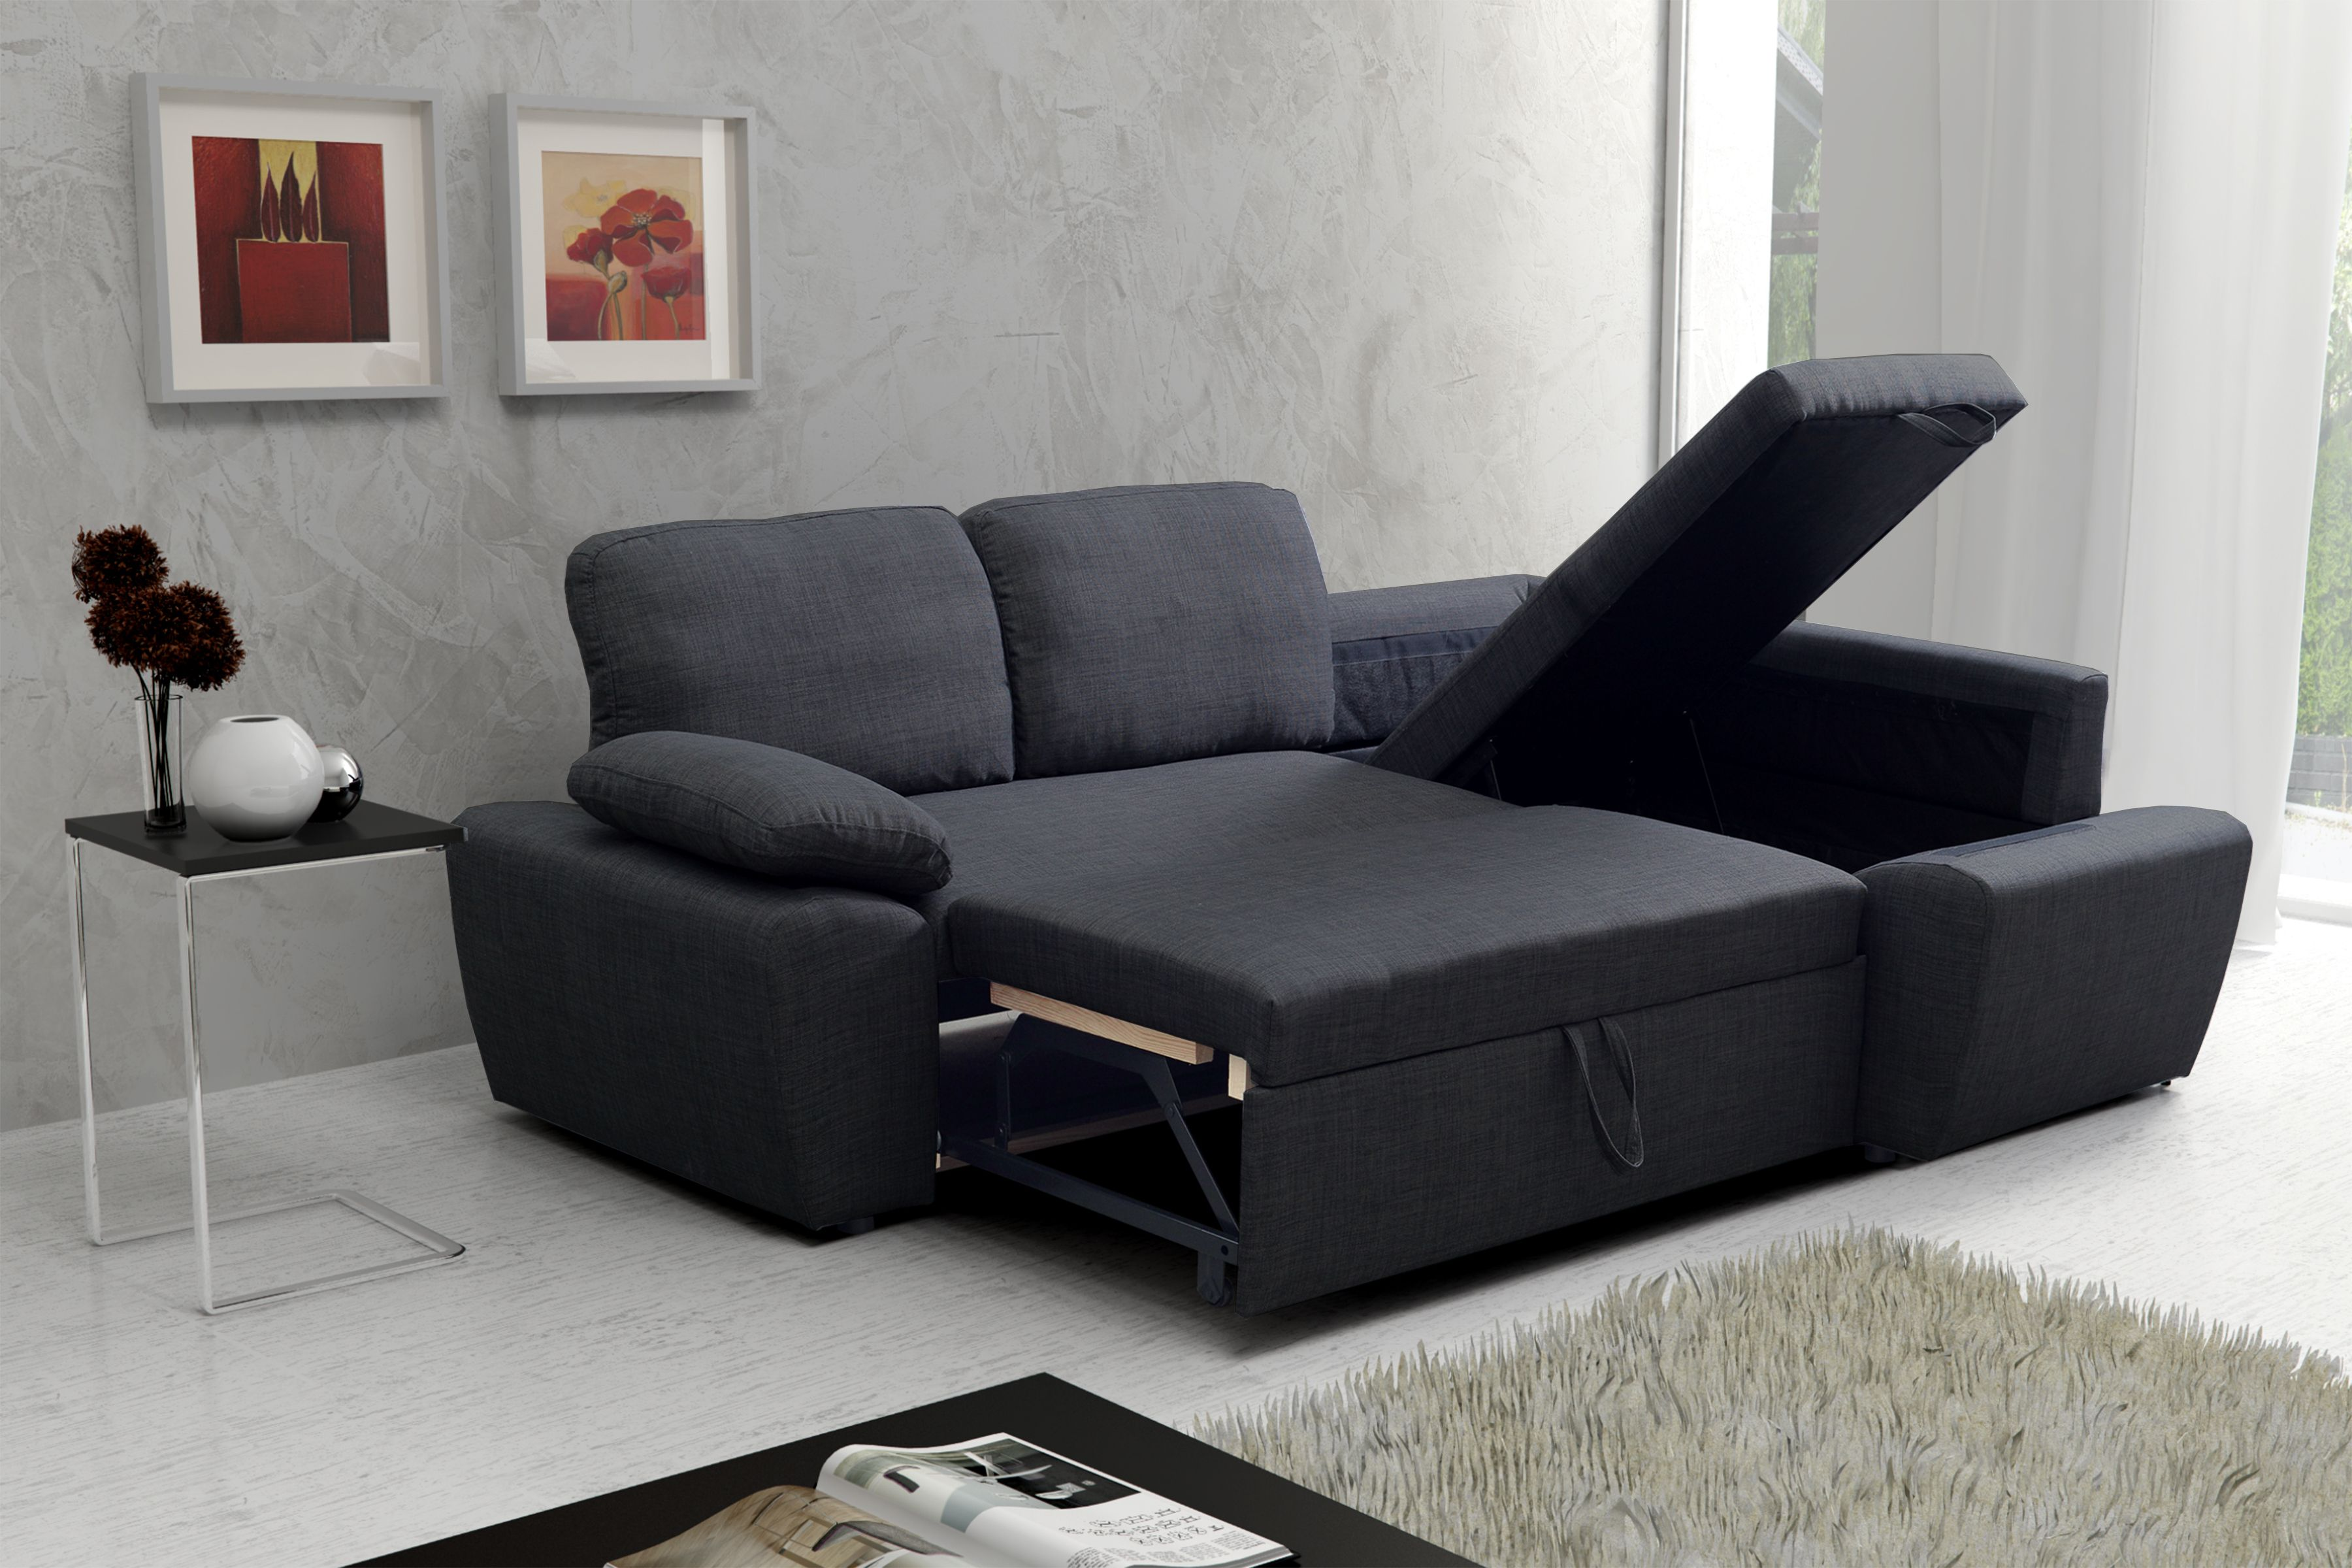 New Modern Enzo Luxury Linen Fabric Corner Storage Sofabed Right Charcoal Grey Corner Storage Luxury Linen Sofa Bed